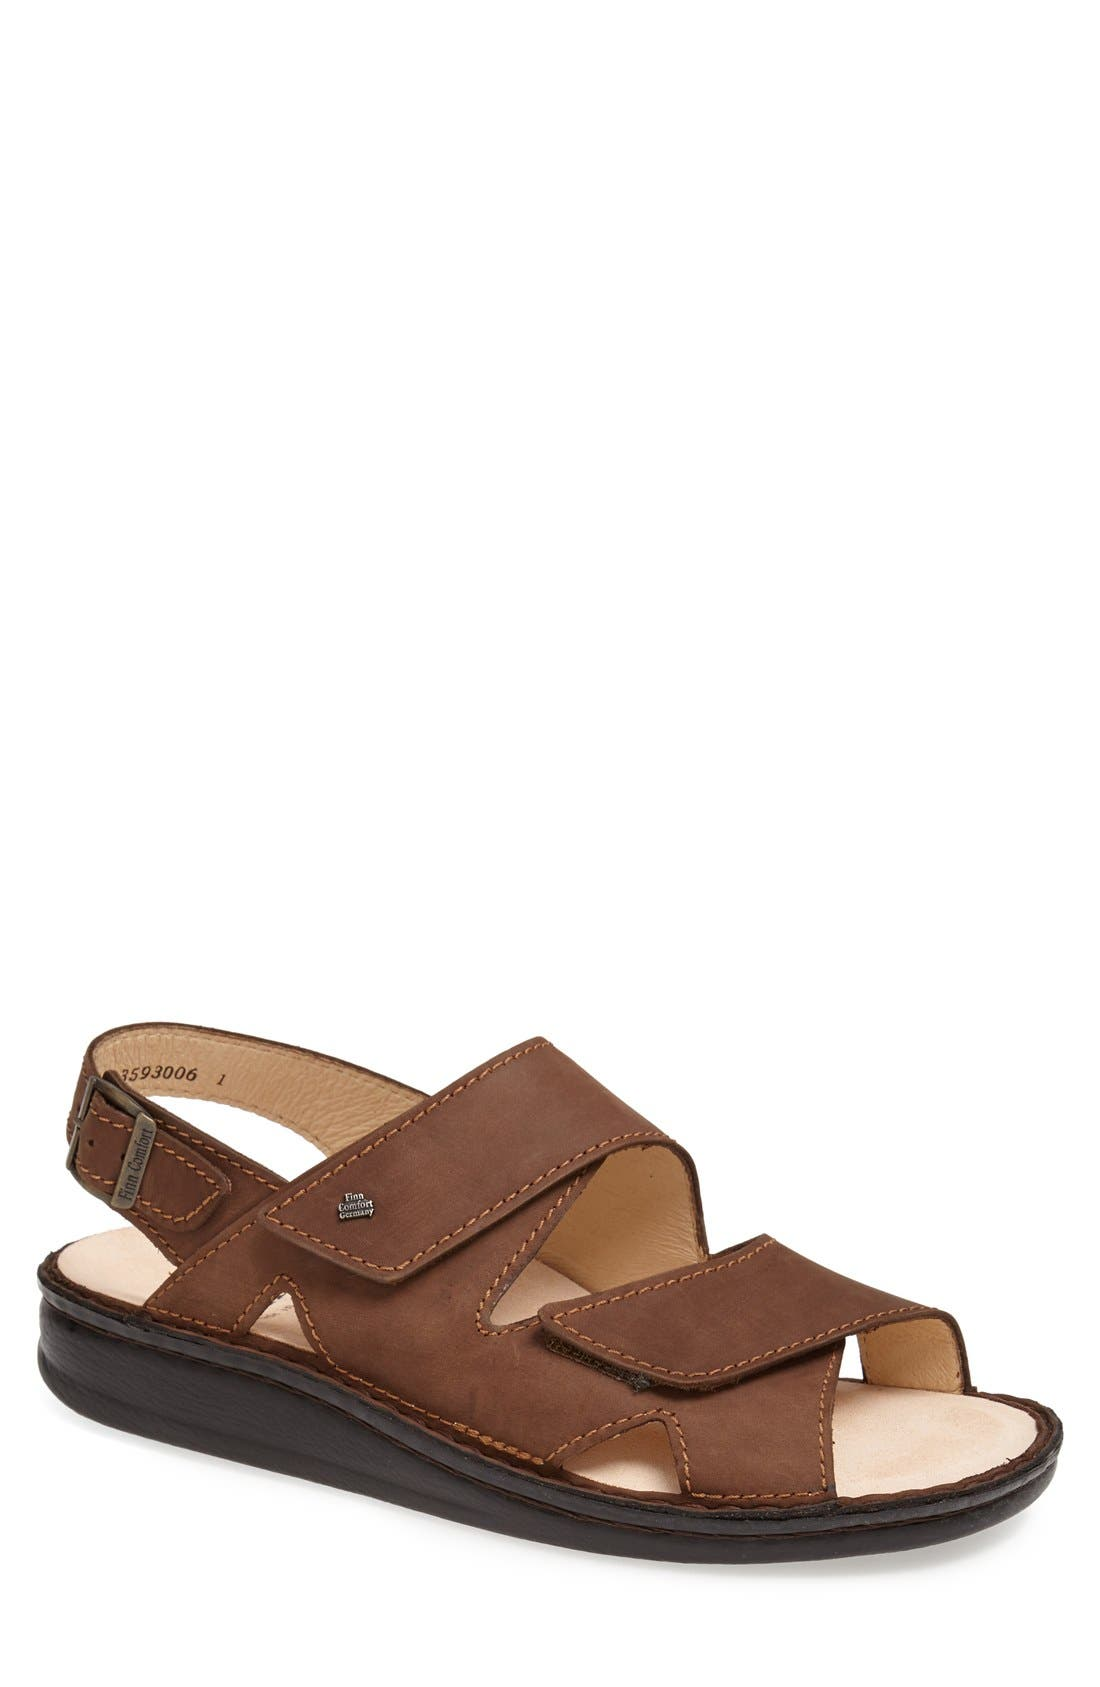 'Toro' Sandal, Main, color, 216